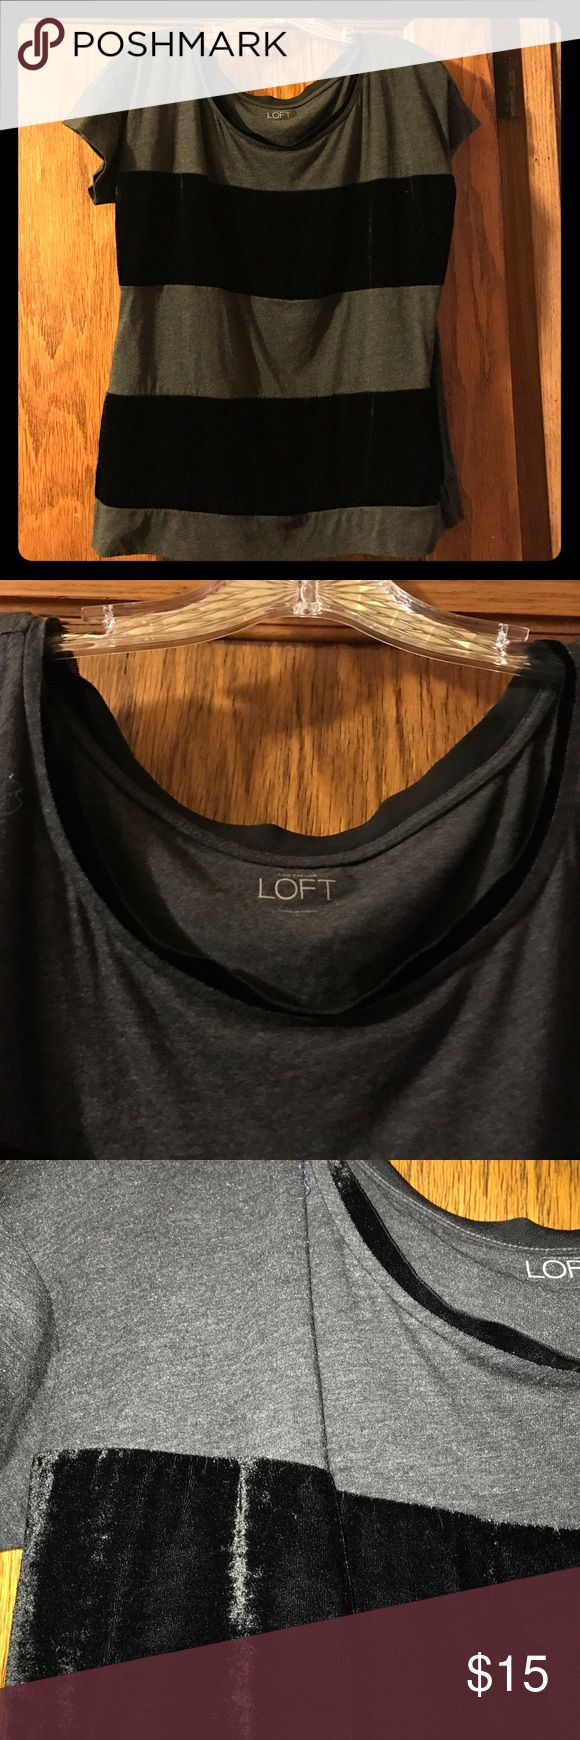 Black & grey short sleeve top with velvet detail. Black and dark grey short sleeve top with velvet stripes. Top is Cotton with velvet stripes on front. There is velvet detail on the neck as well. Back of top is cotton. See pictures for detail. Worn one time. Cared for well. Size medium from LOFT. LOFT Tops Tees - Short Sleeve